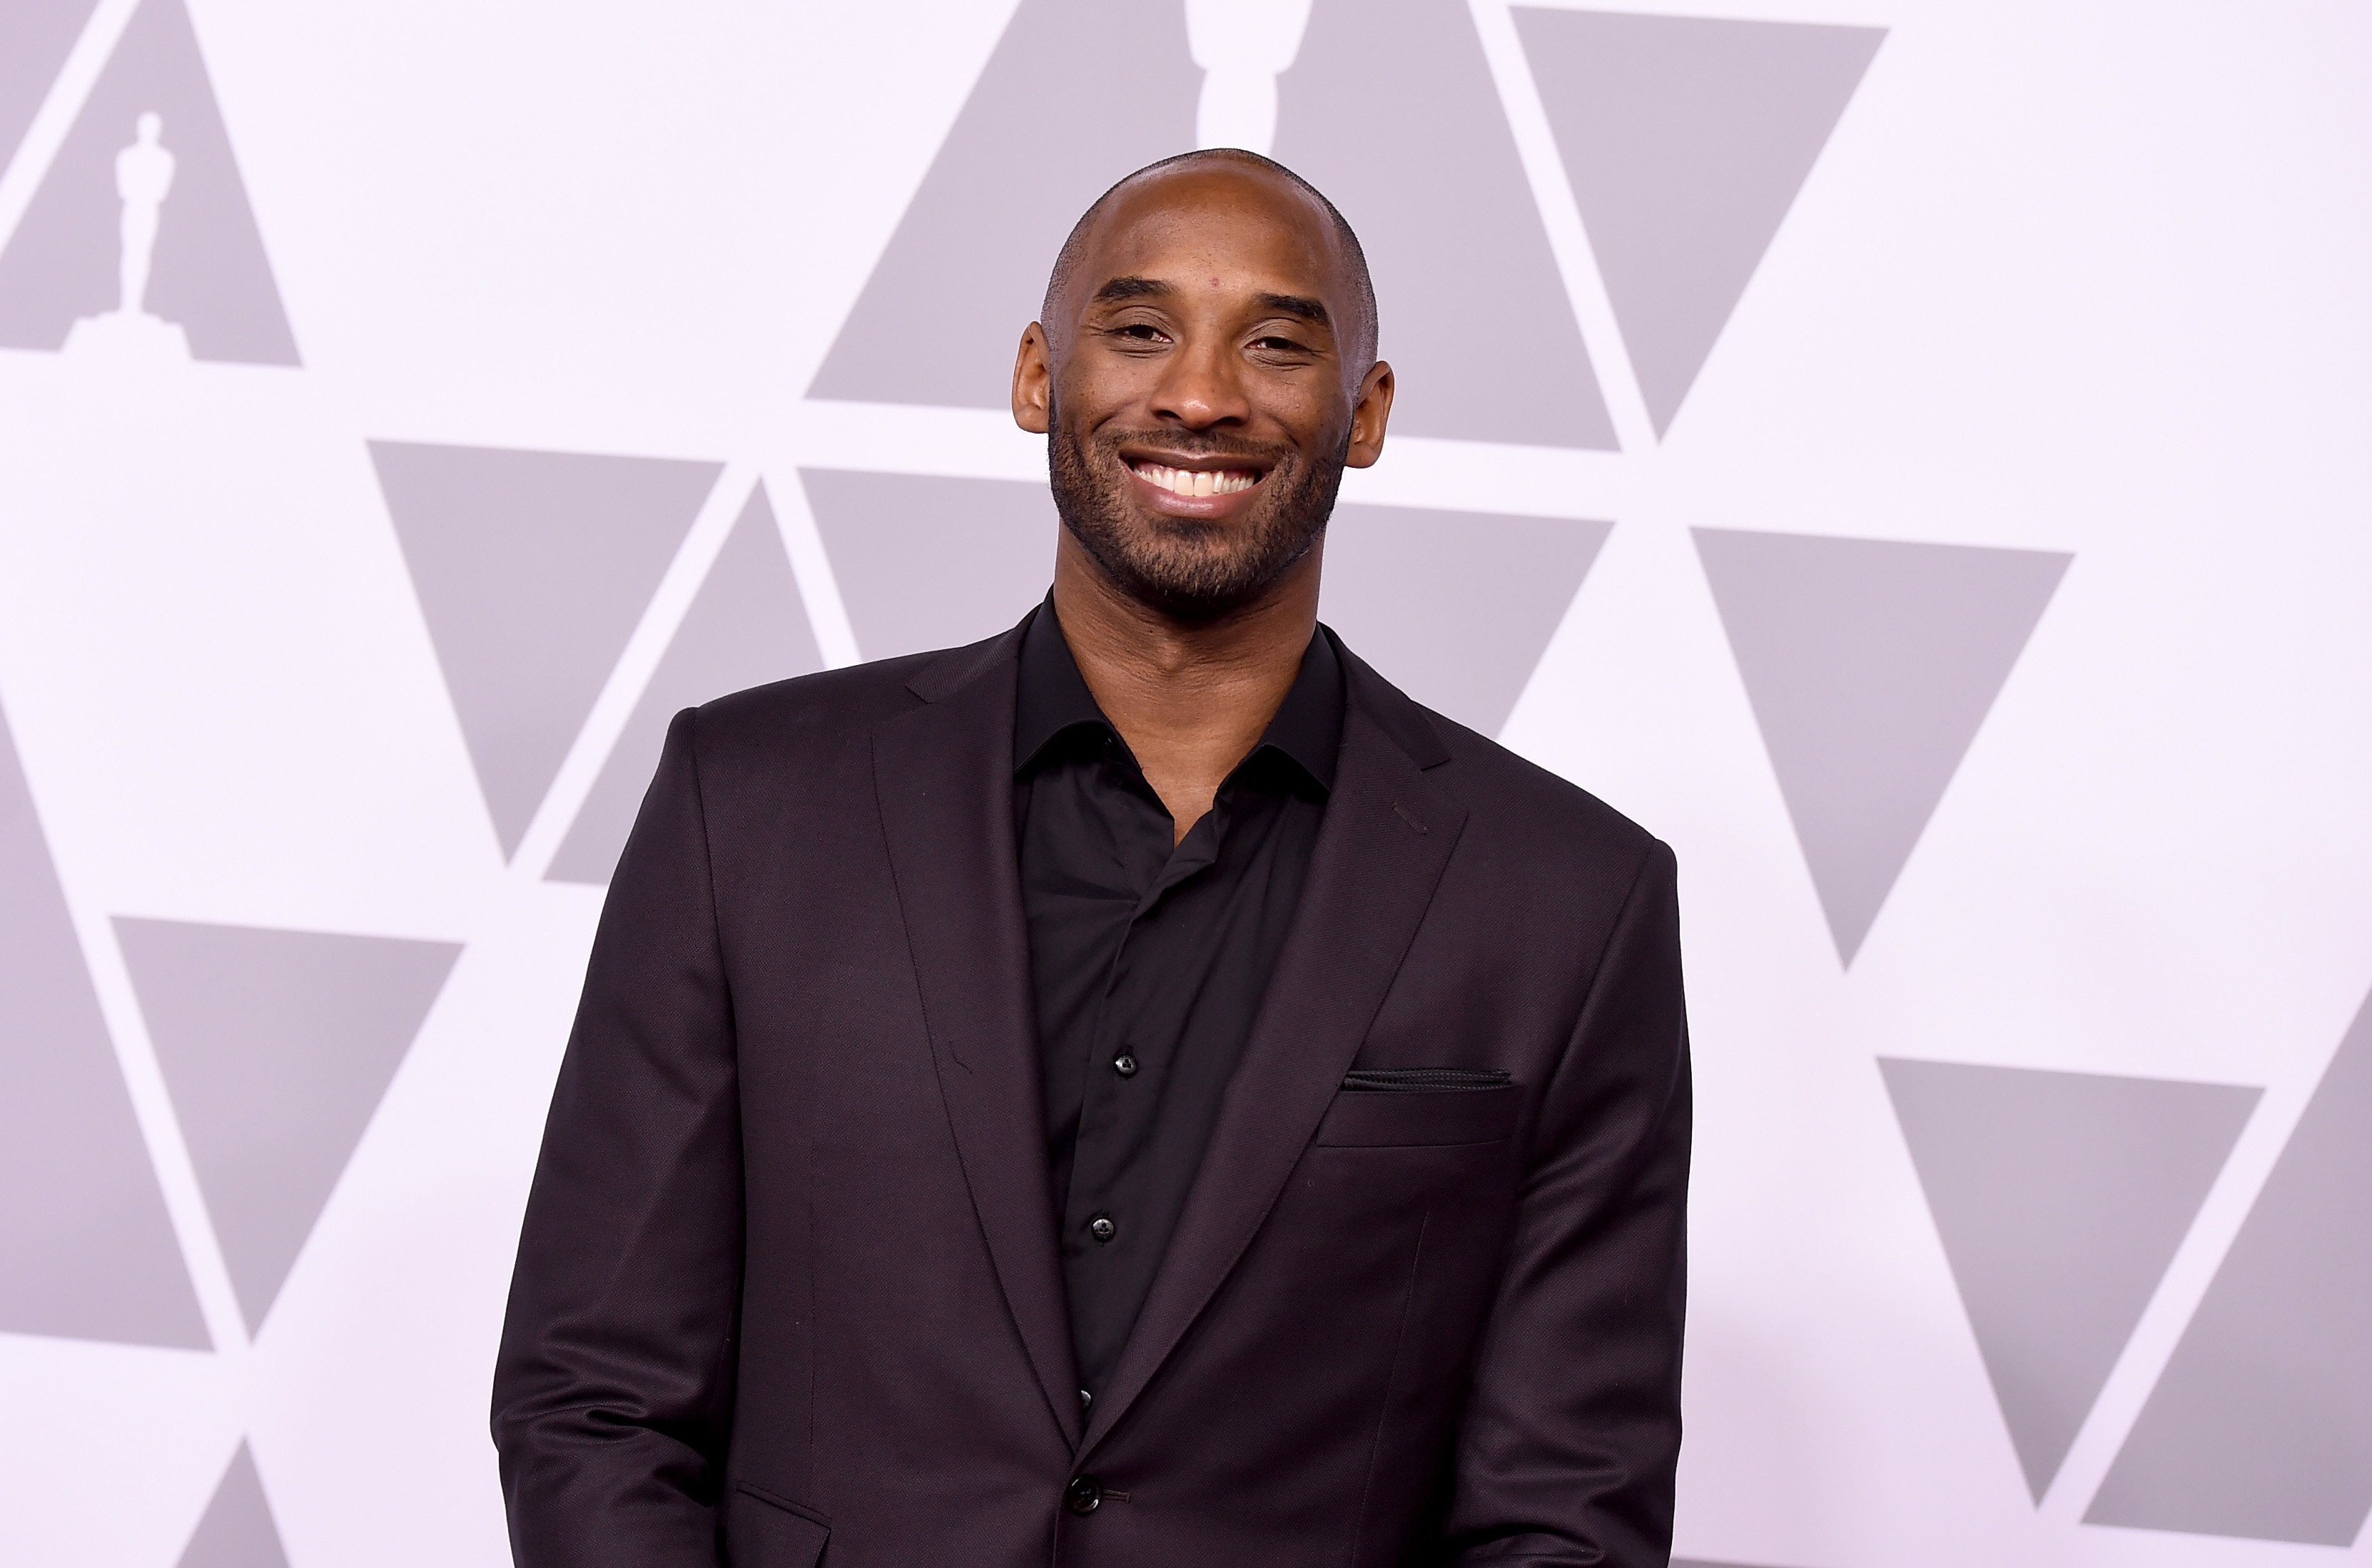 Remembering our favorite Kobe Bryant moments